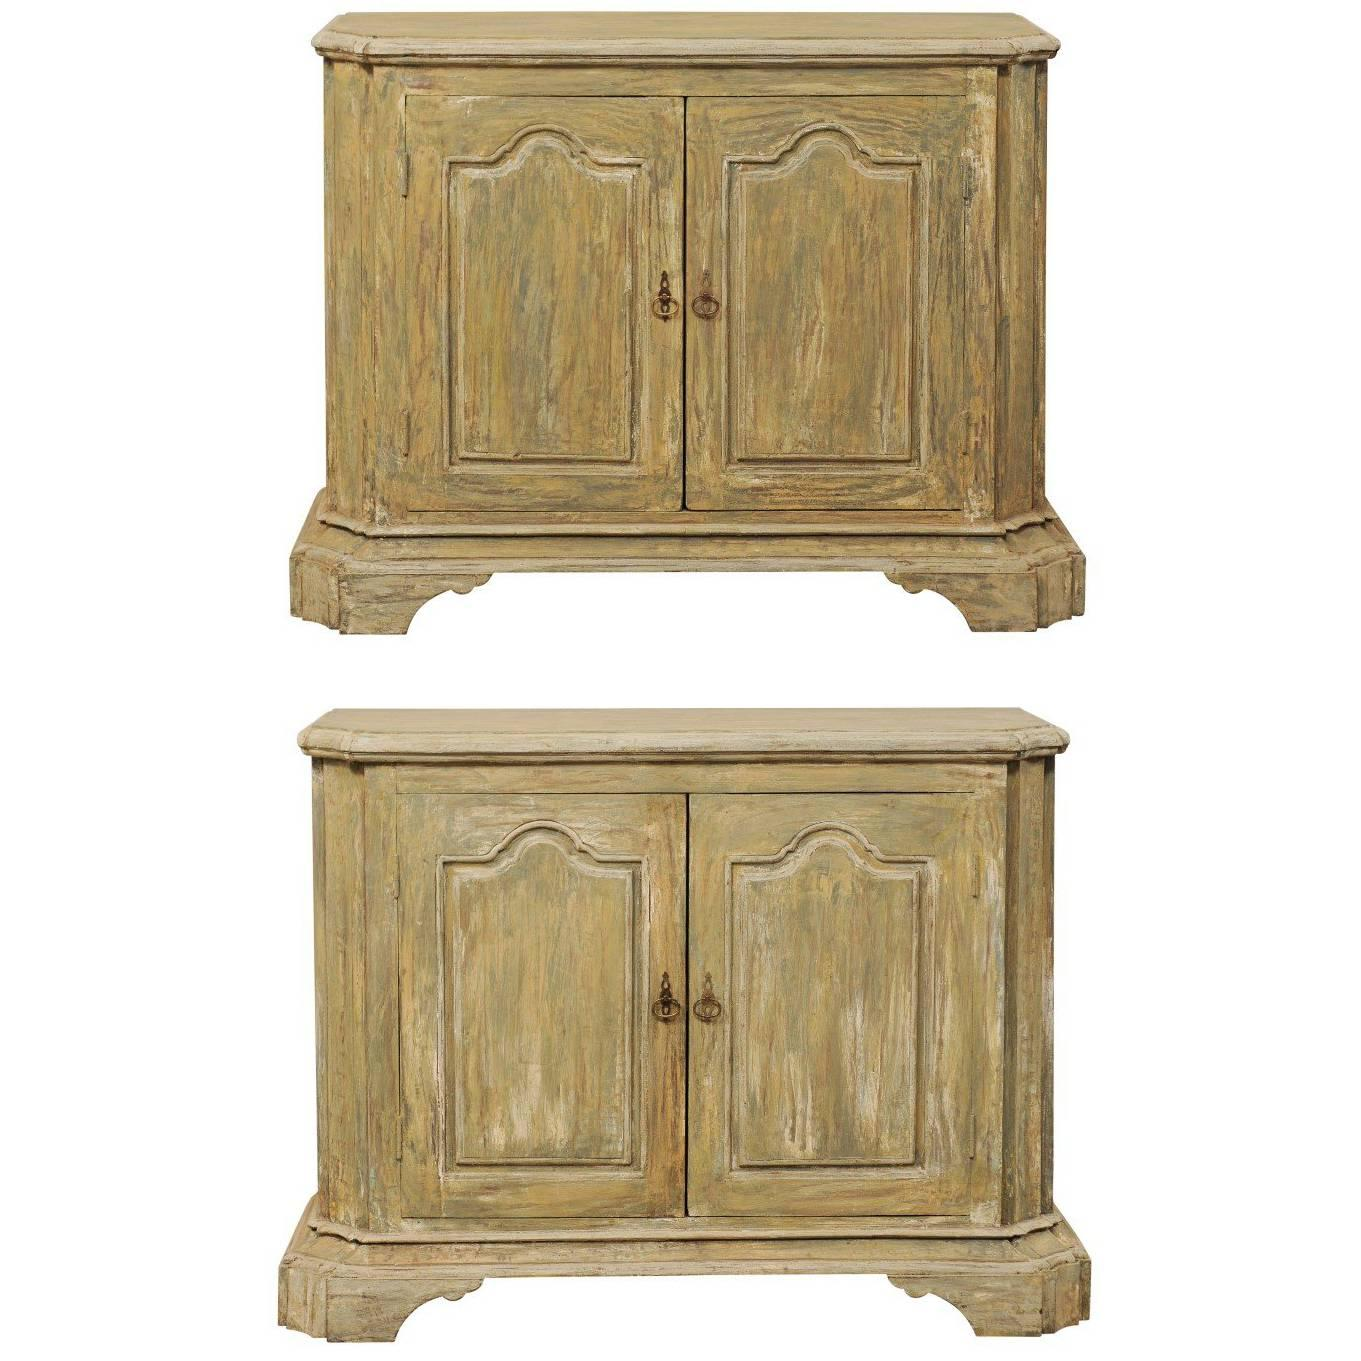 Pair of Custom American Two-Door Painted Wood Buffet Consoles with Bracket Feet 1  sc 1 st  1stDibs & Pair of Custom American Two-Door Painted Wood Buffet Consoles with ... pezcame.com